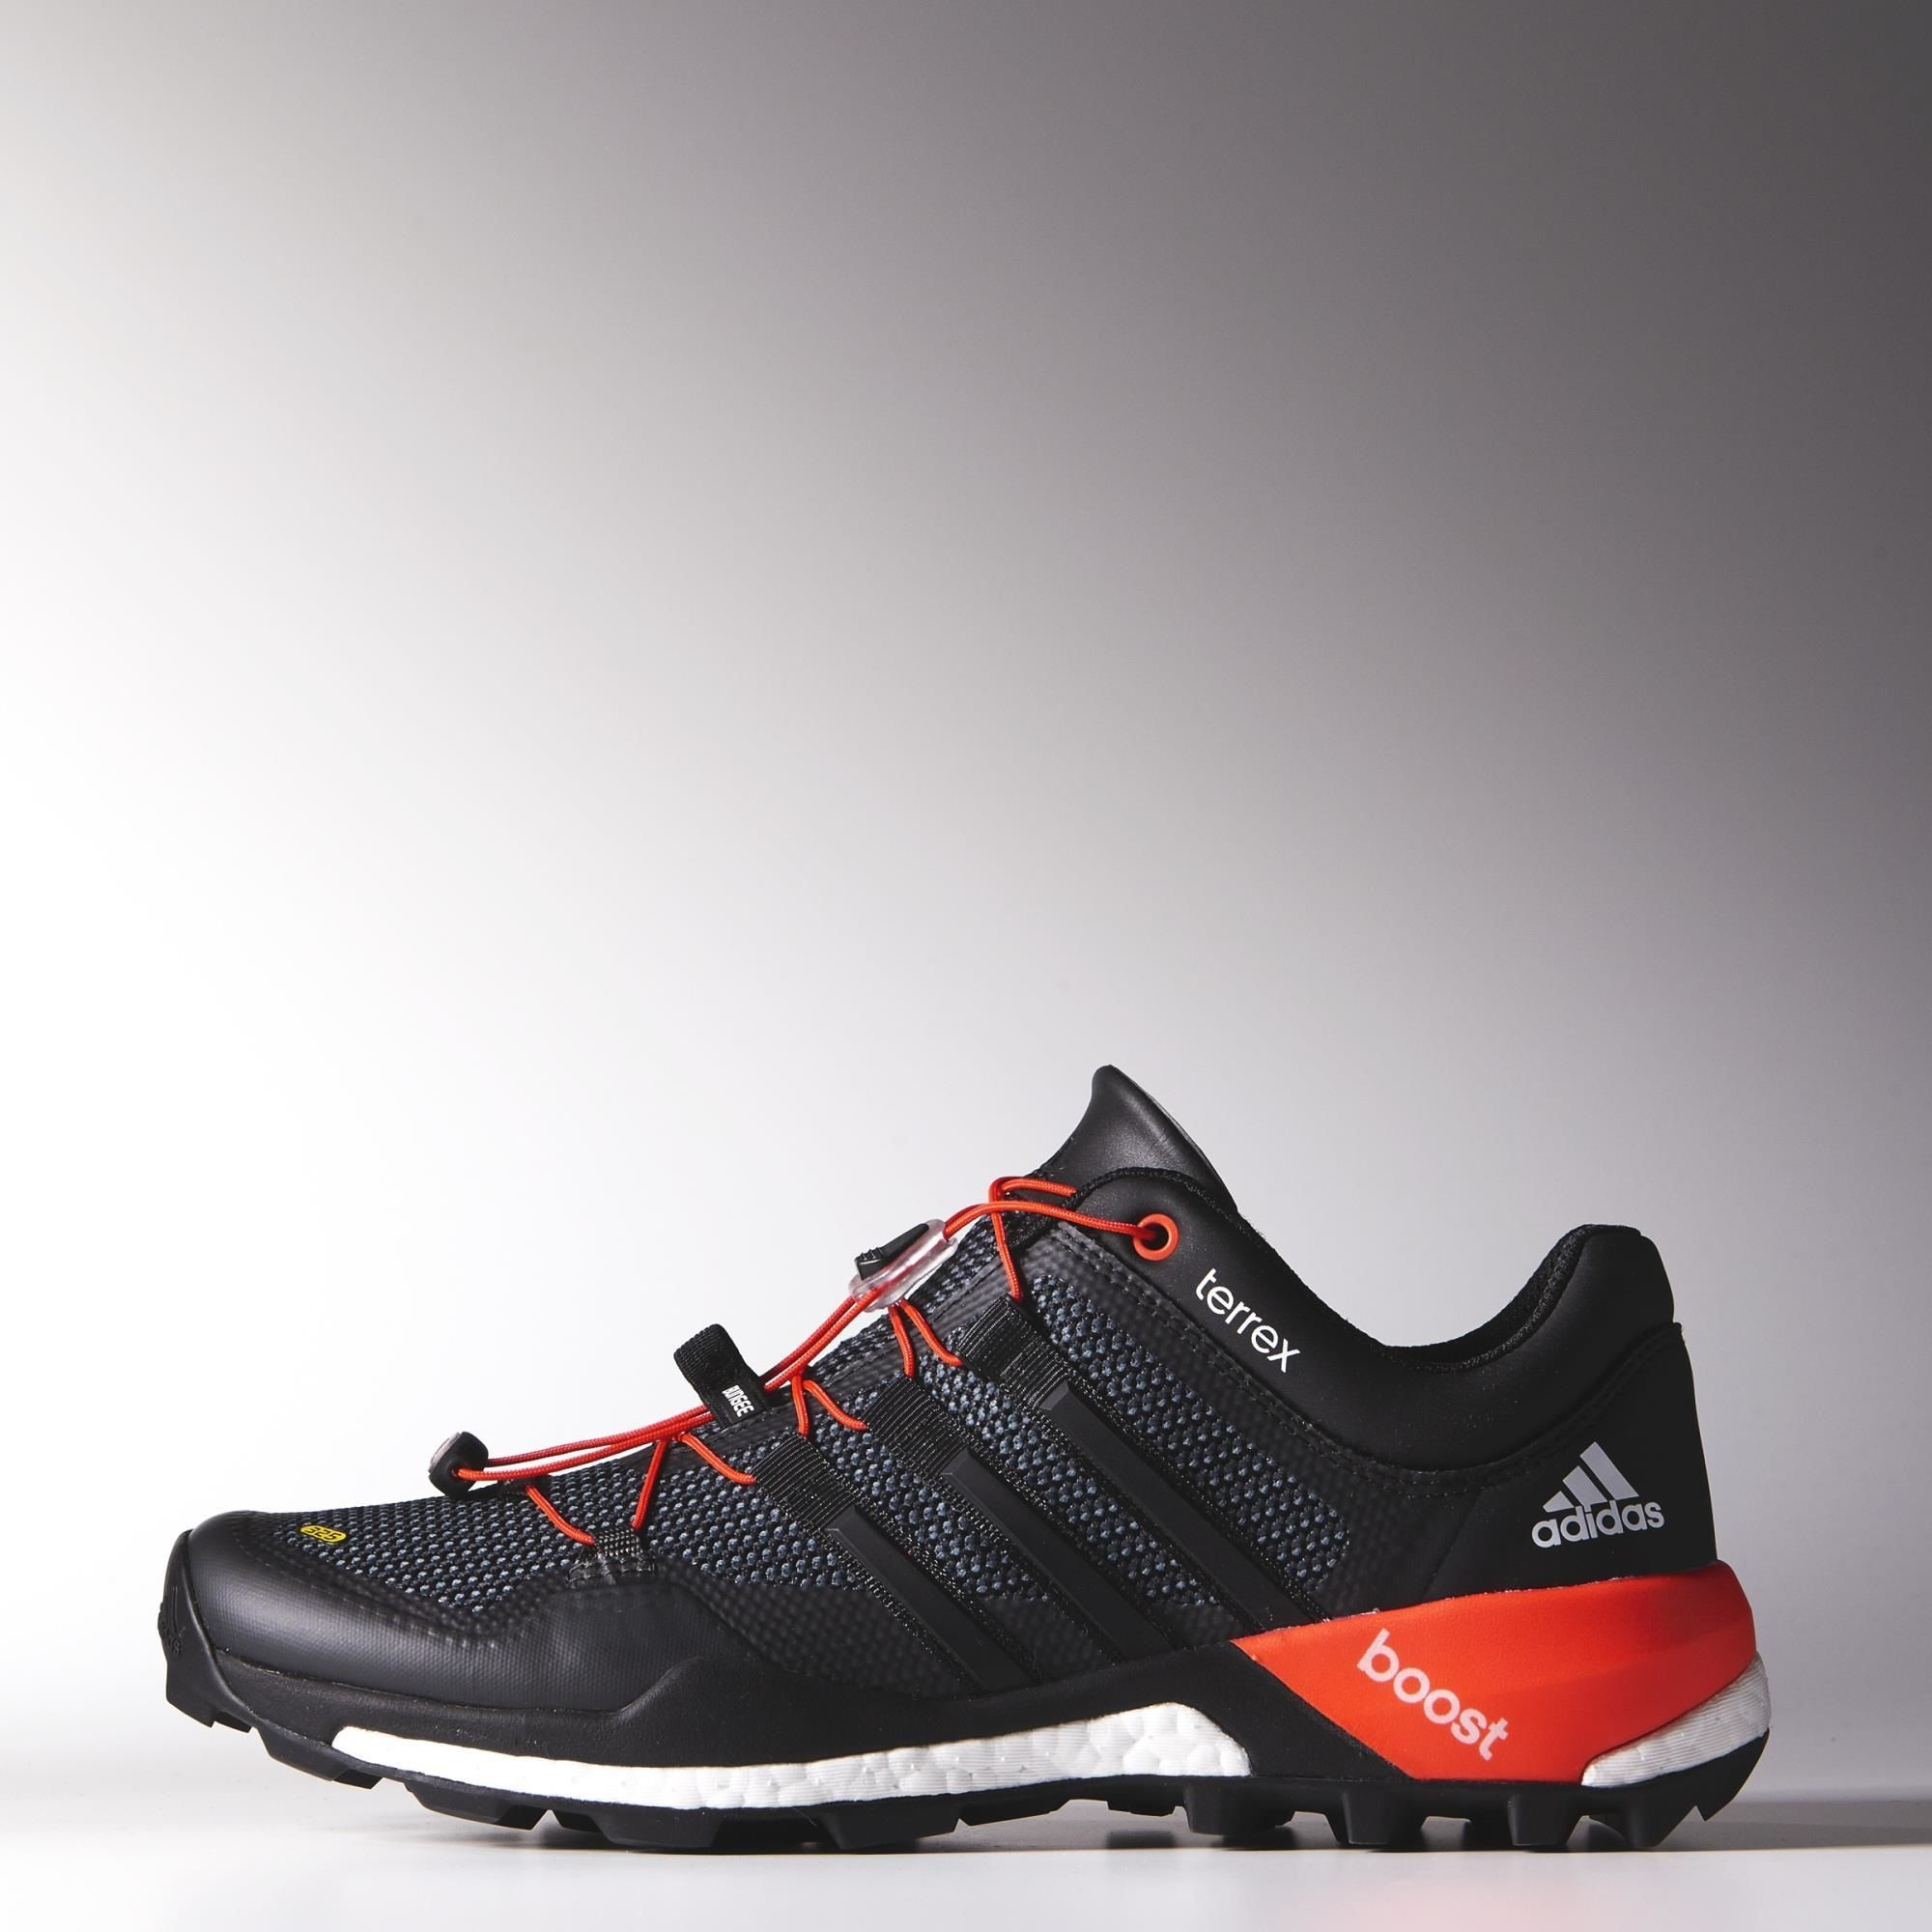 adidas Terrex Boost Shoes — Soles made by Continental Tyres.